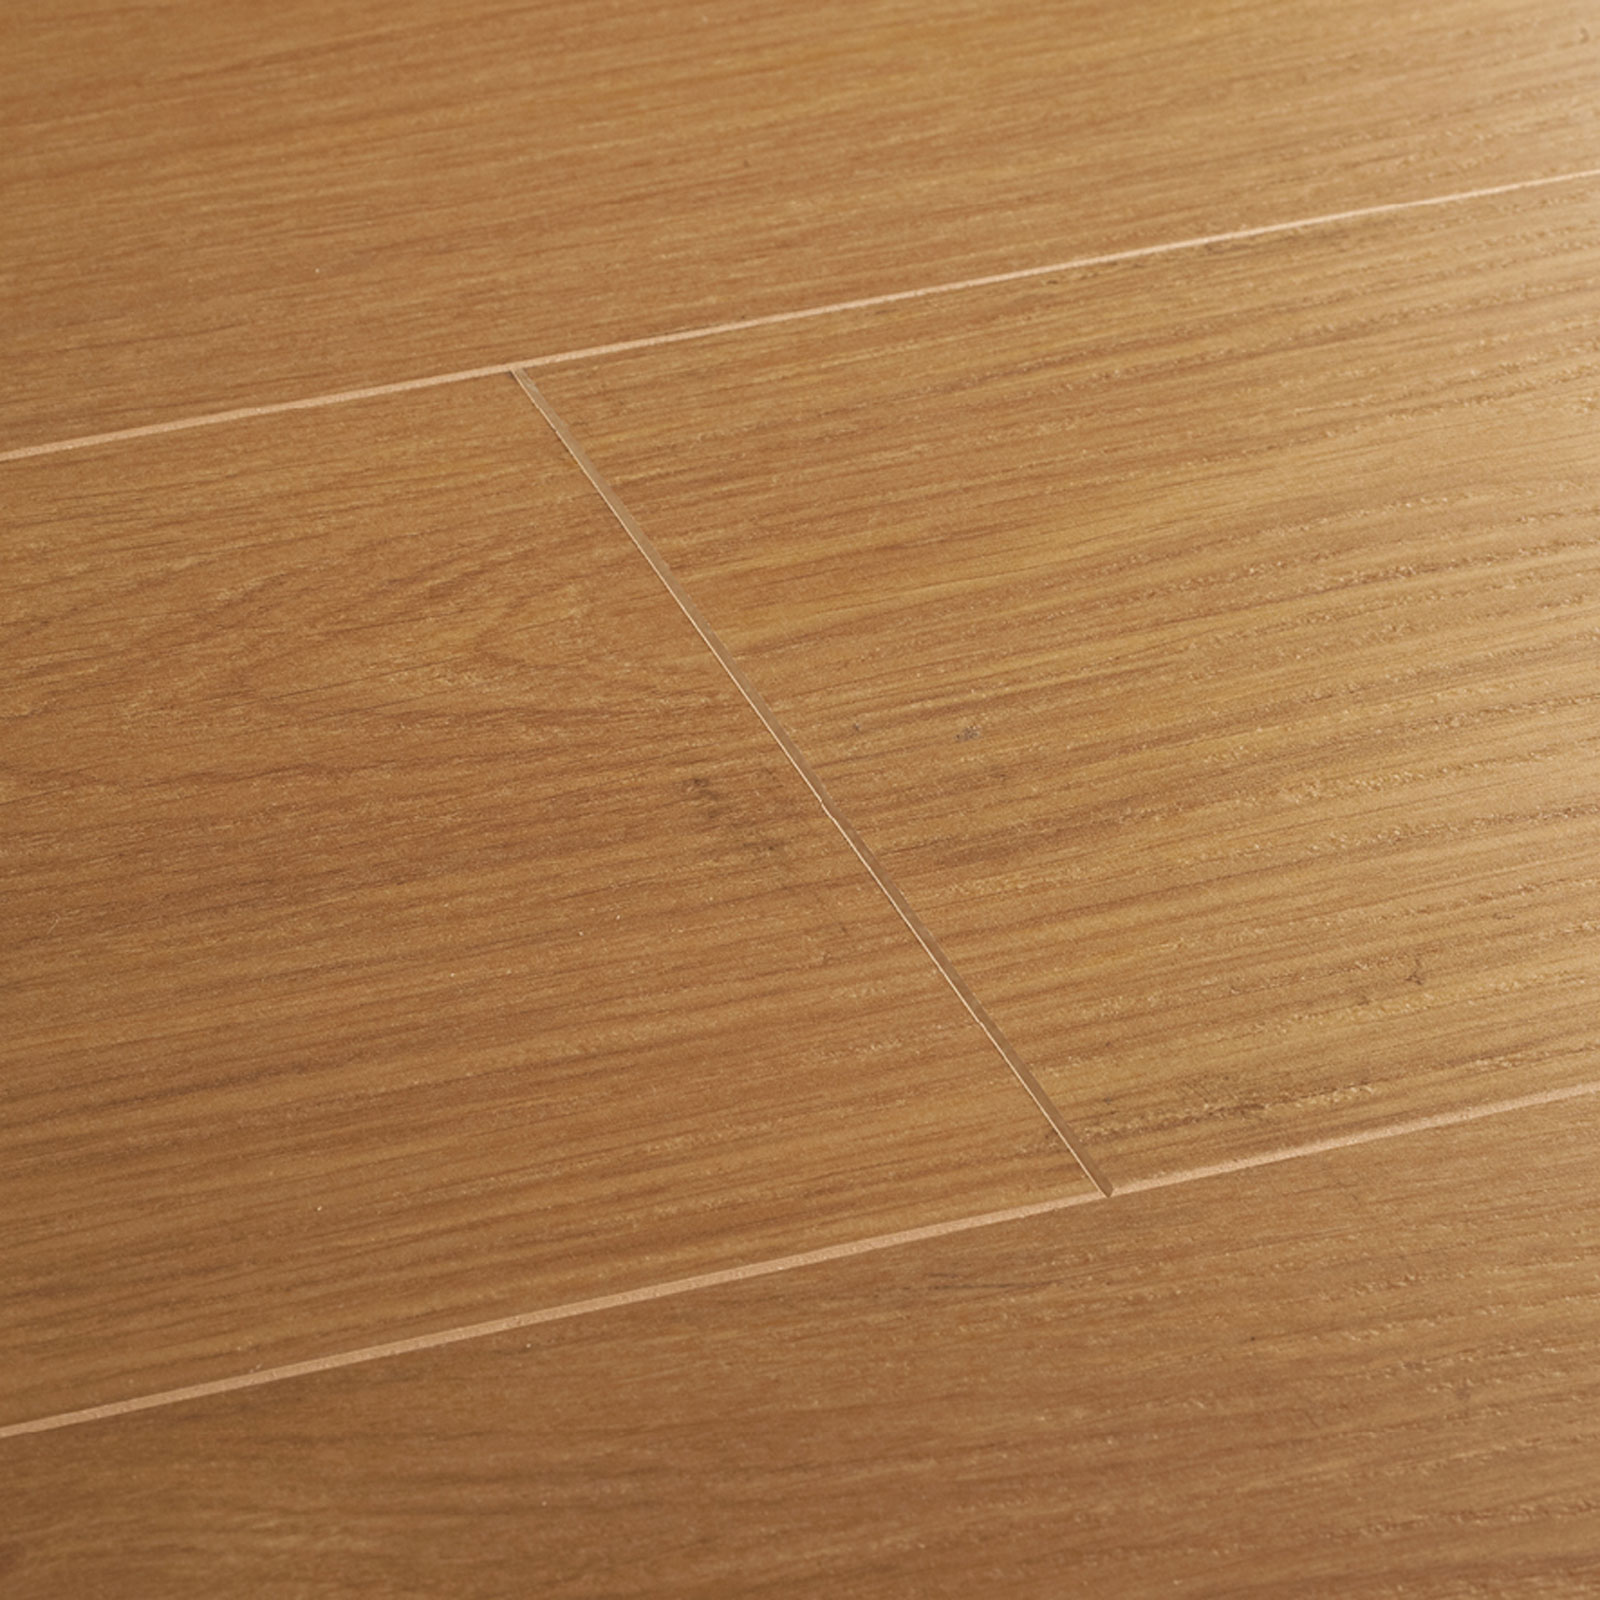 Wembury natural oak laminate flooring woodpecker flooring for Laminate flooring retailers